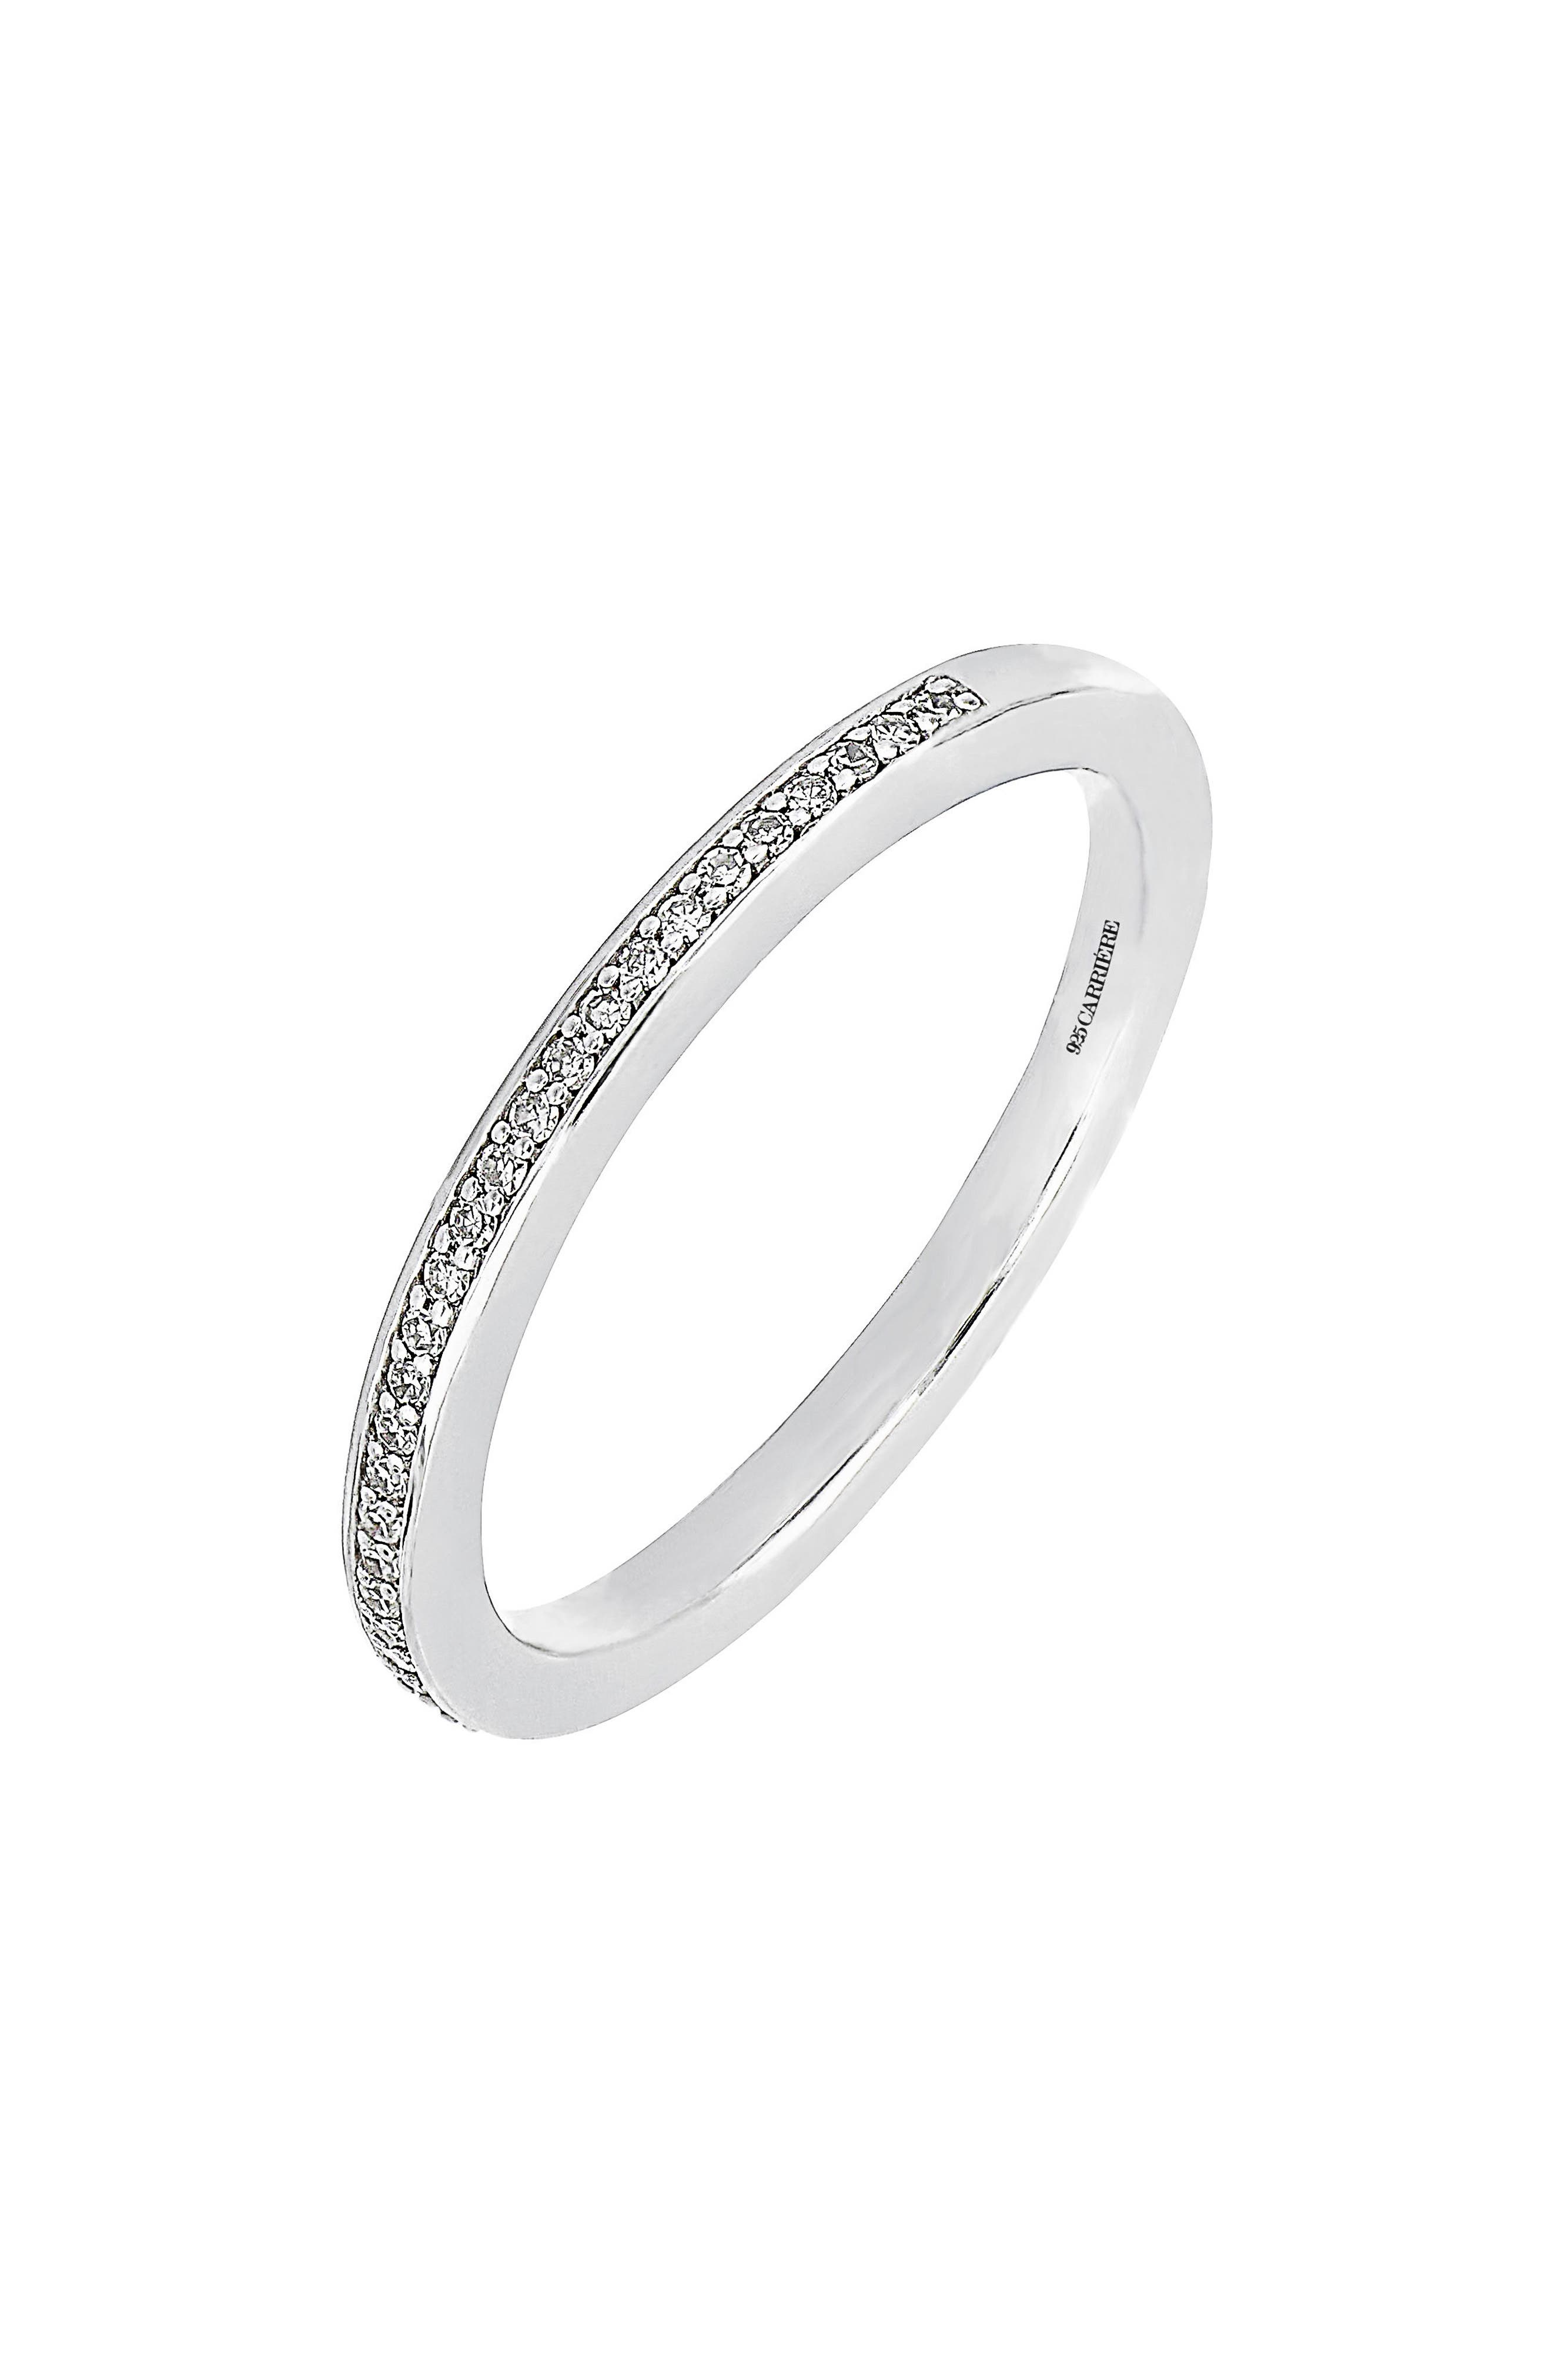 Carrière Diamond Stacking Ring,                         Main,                         color, 040